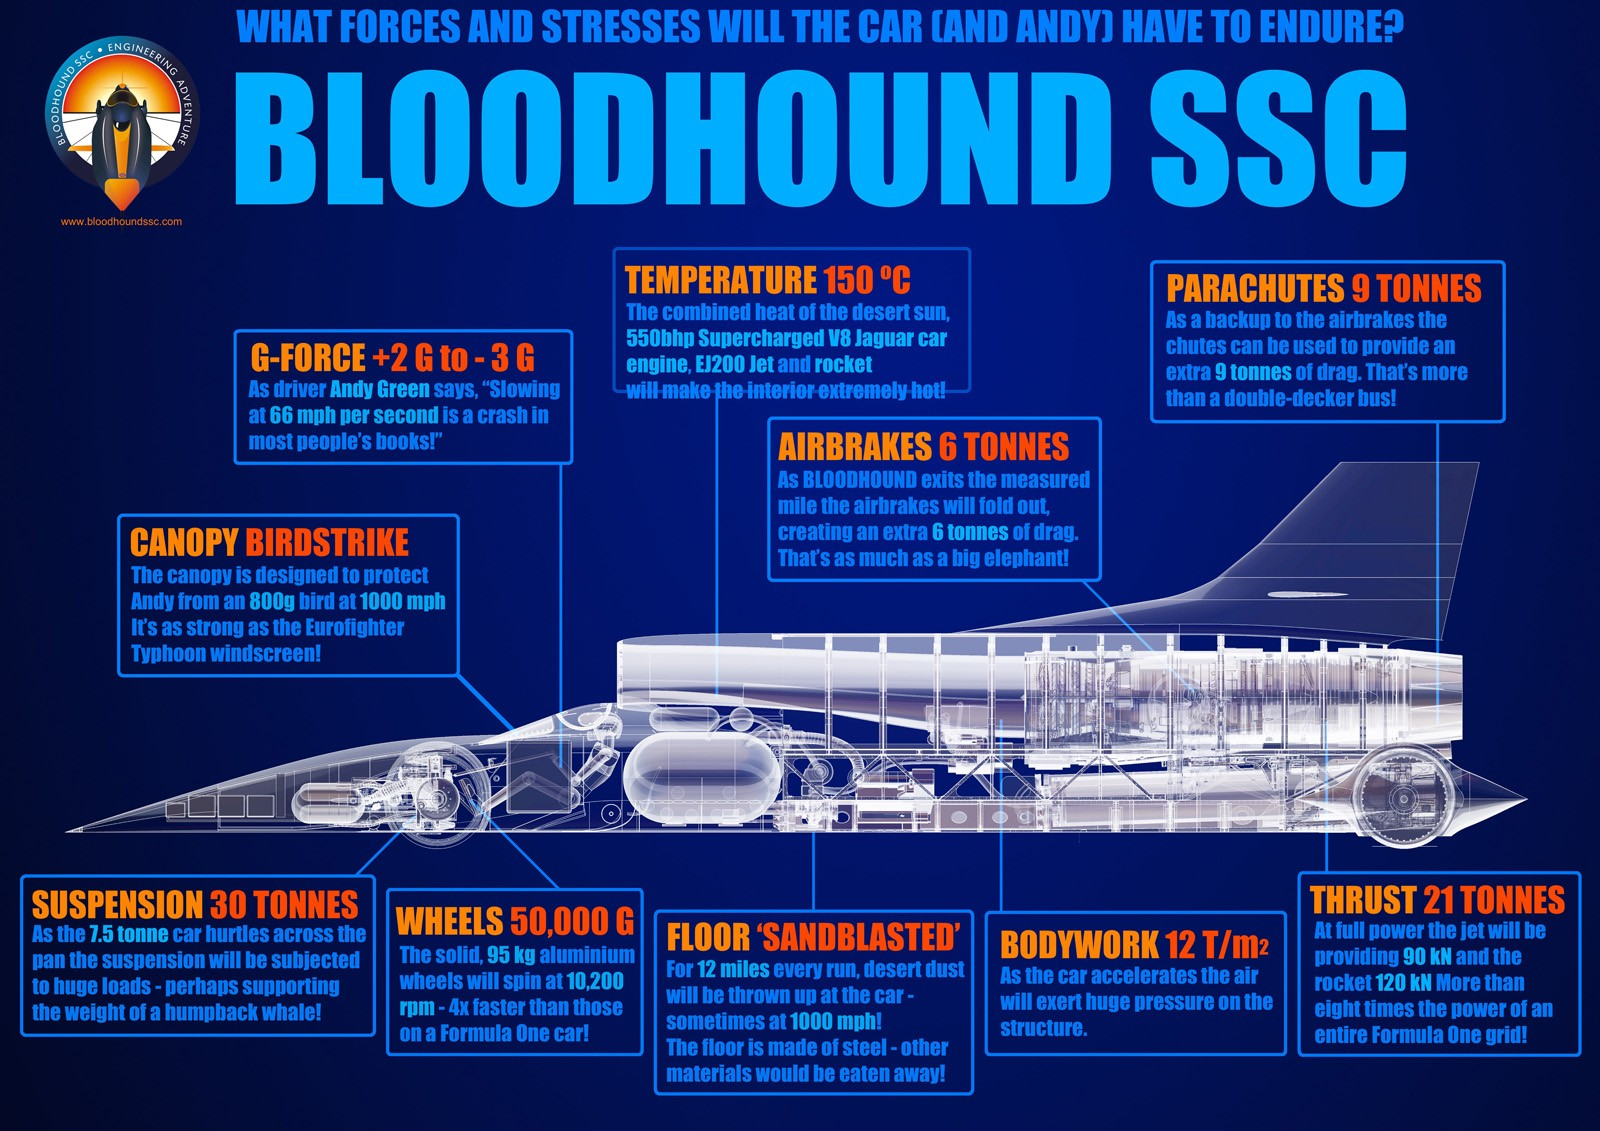 bloodhound-supersonic-first-record-attempt-october-2017_4